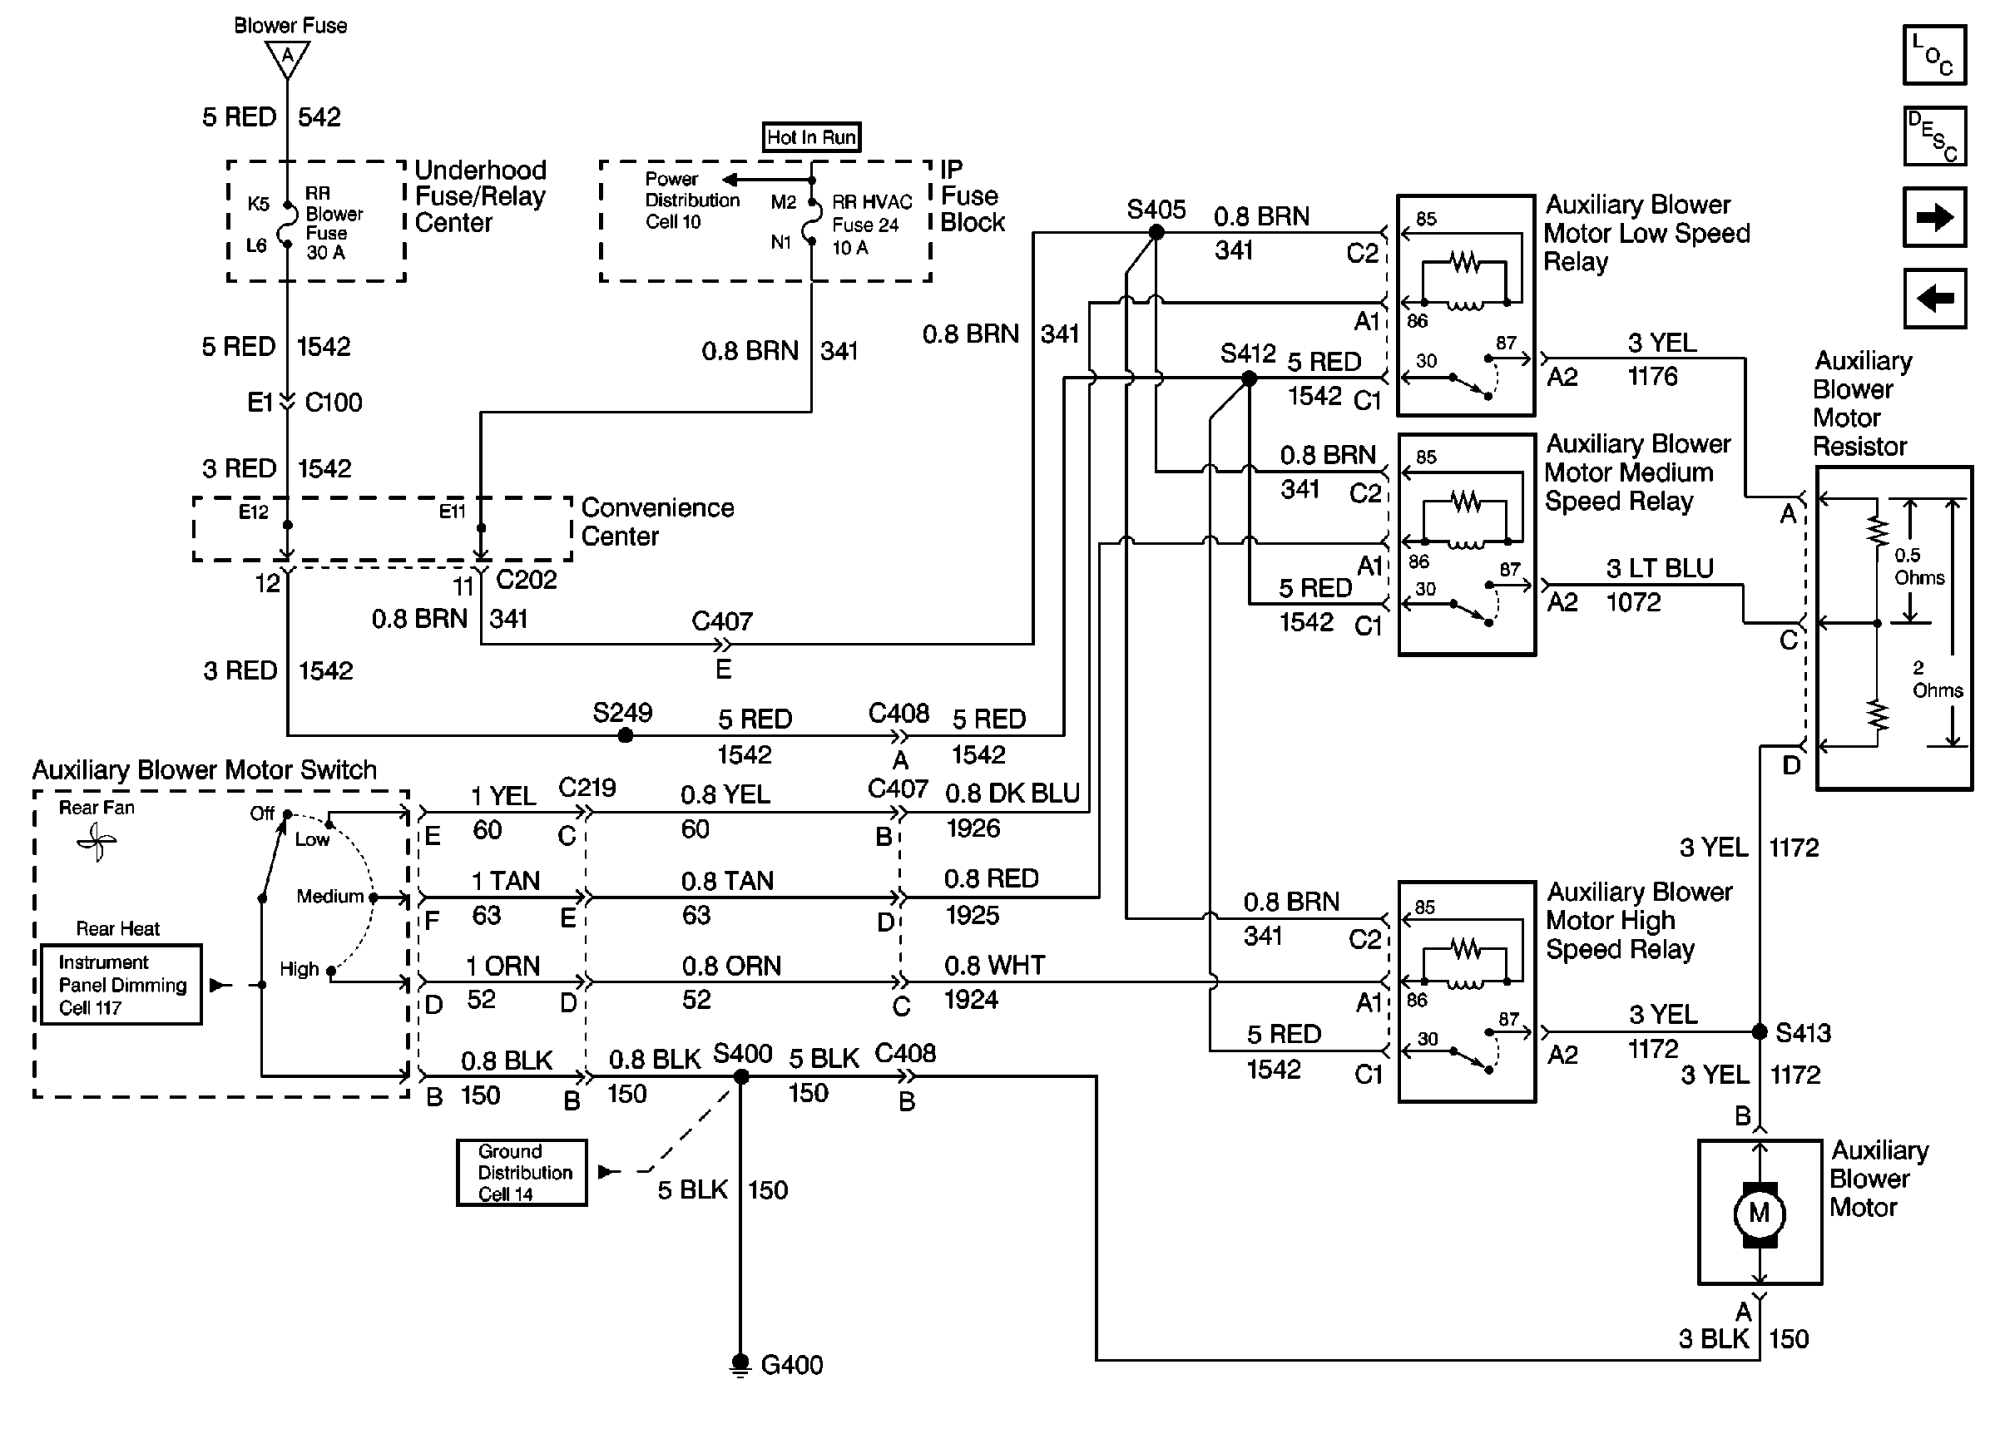 hight resolution of 2004 chevy silverado 2500hd engine diagram wiring diagram toolbox2006 chevy express engine diagram wiring diagrams konsult